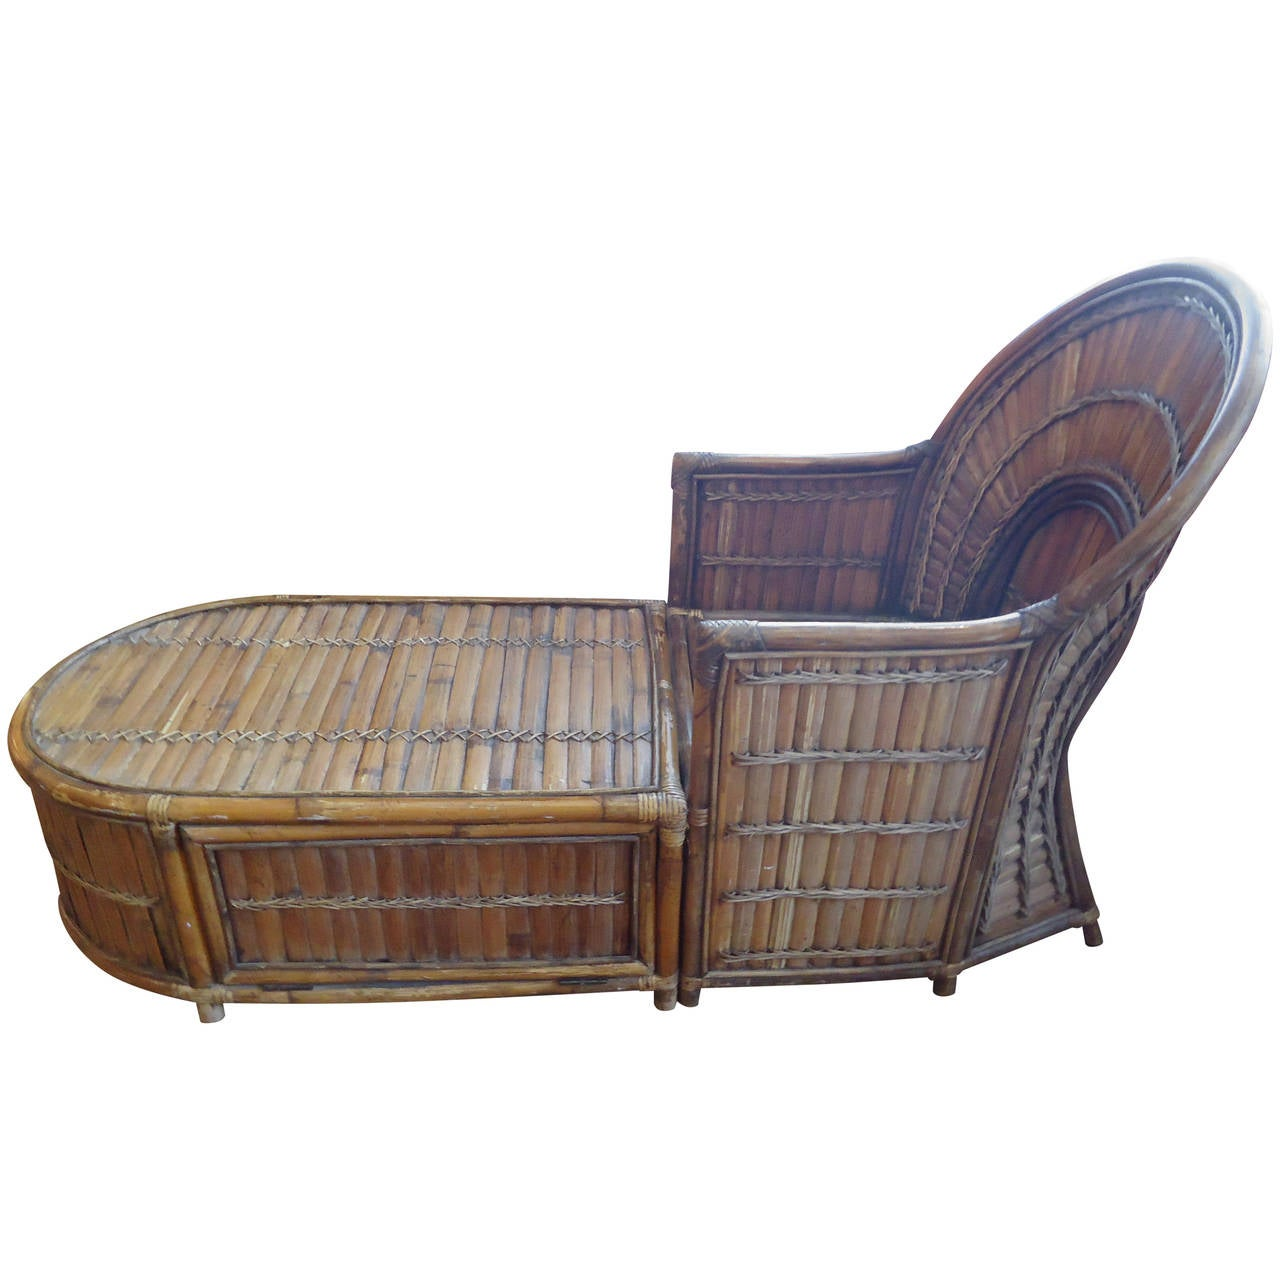 Rare bamboo art deco style chaise lounge at 1stdibs for Art deco chaise lounge